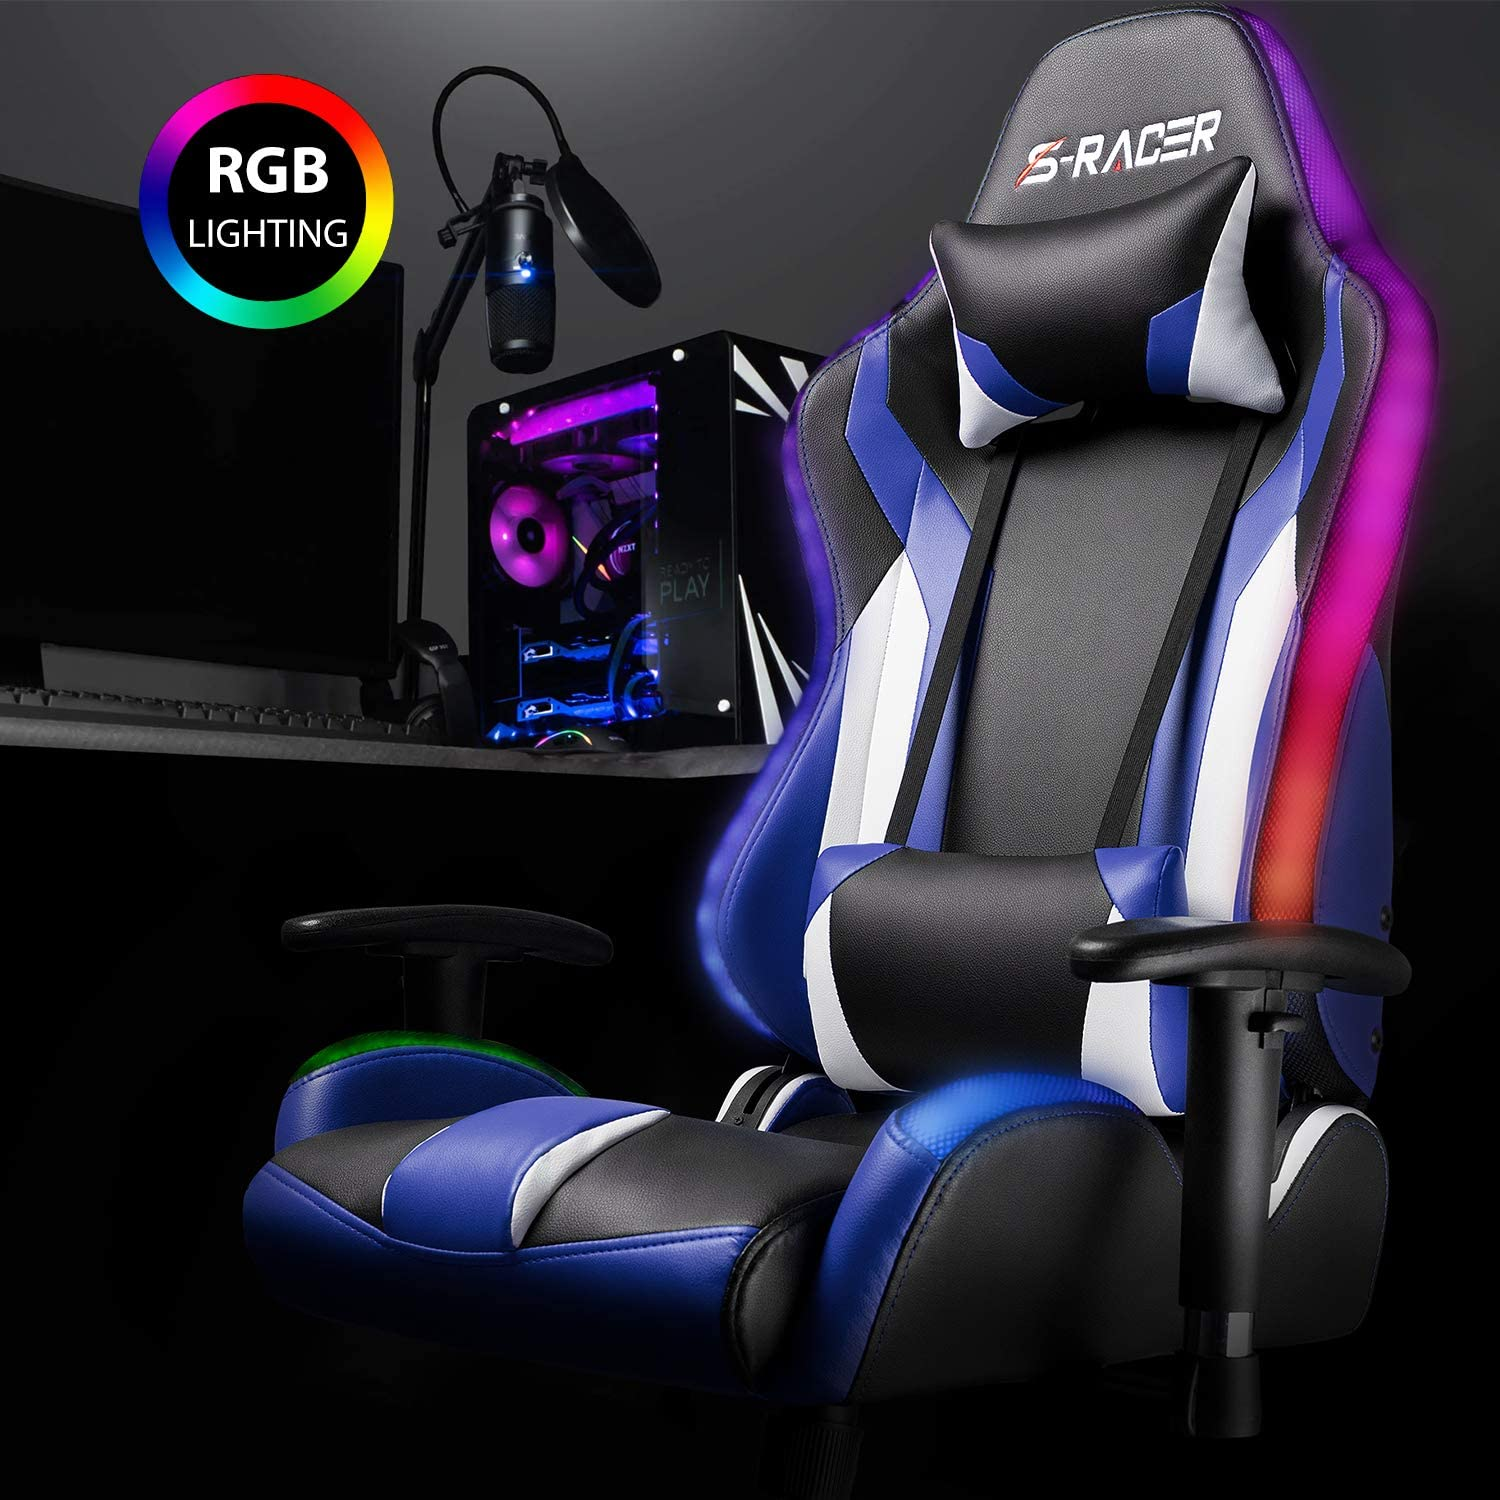 Red Homall Gaming Chair RGB Lighting High Back Computer Chair PU Leather Desk Chair PC Racing LED Ergonomic Adjustable Swivel Task Chair with Headrest and Lumbar Support